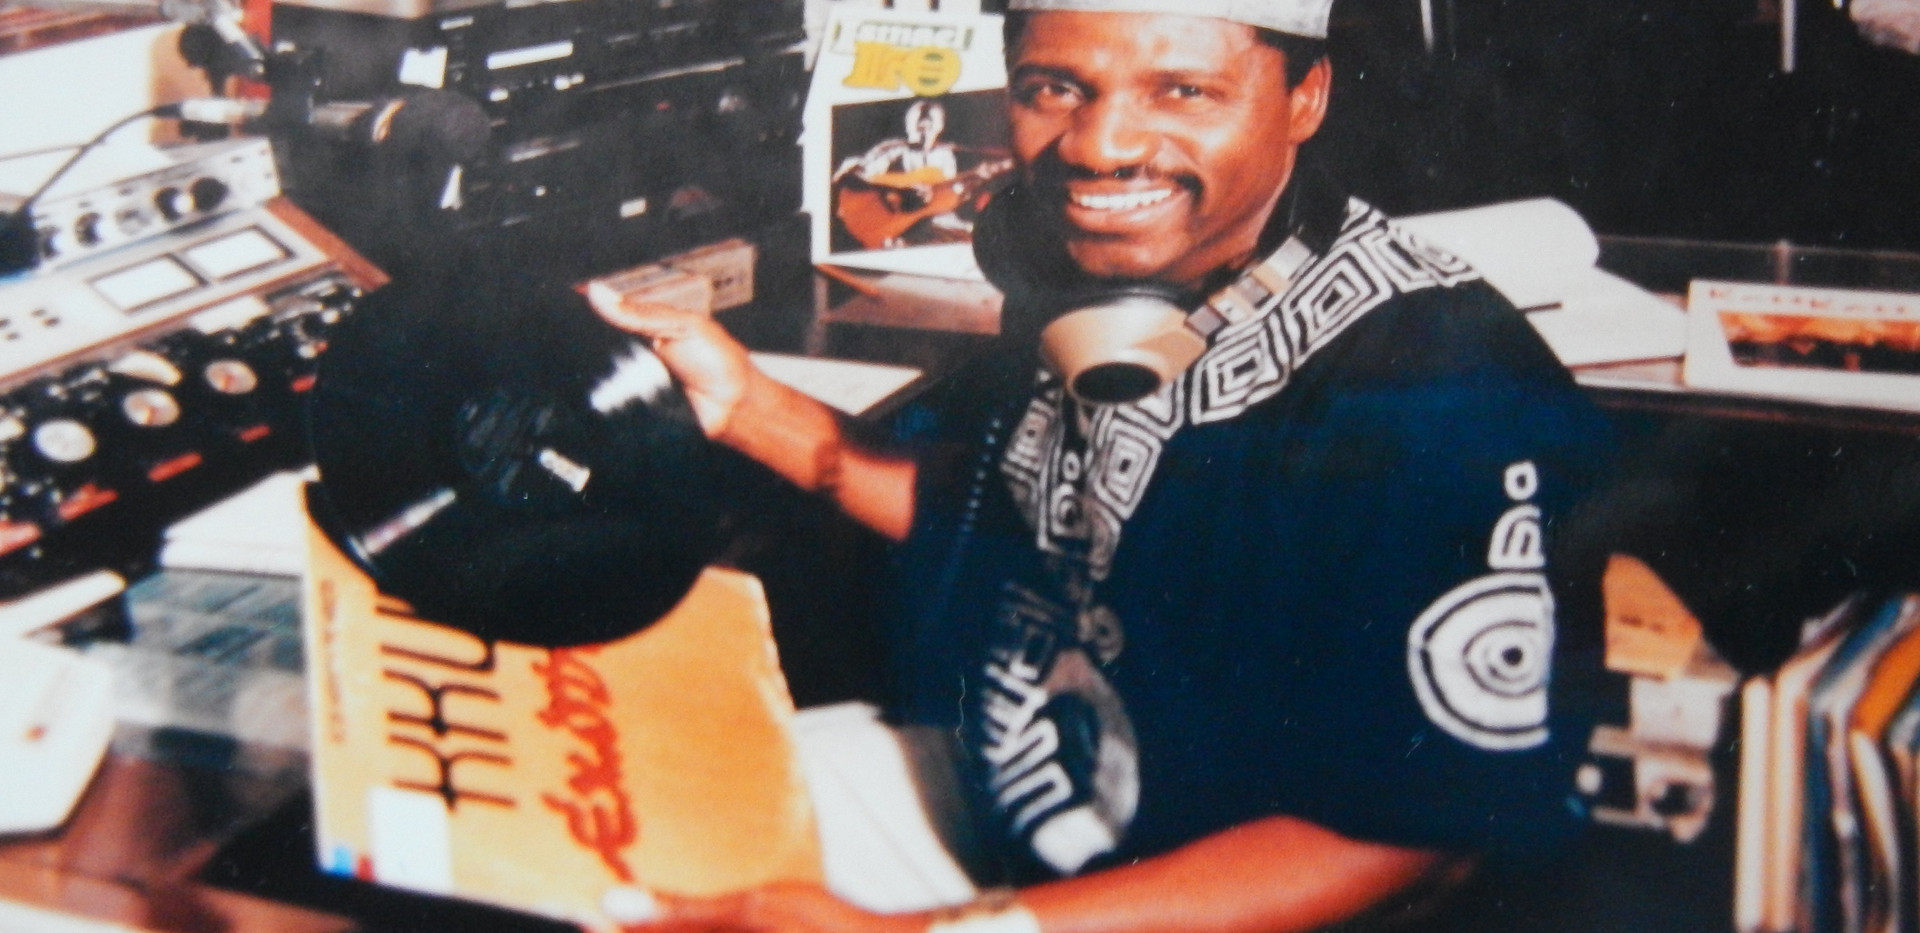 Hosting Echoes of Africa on KKUP radio Cupertino California late 80s